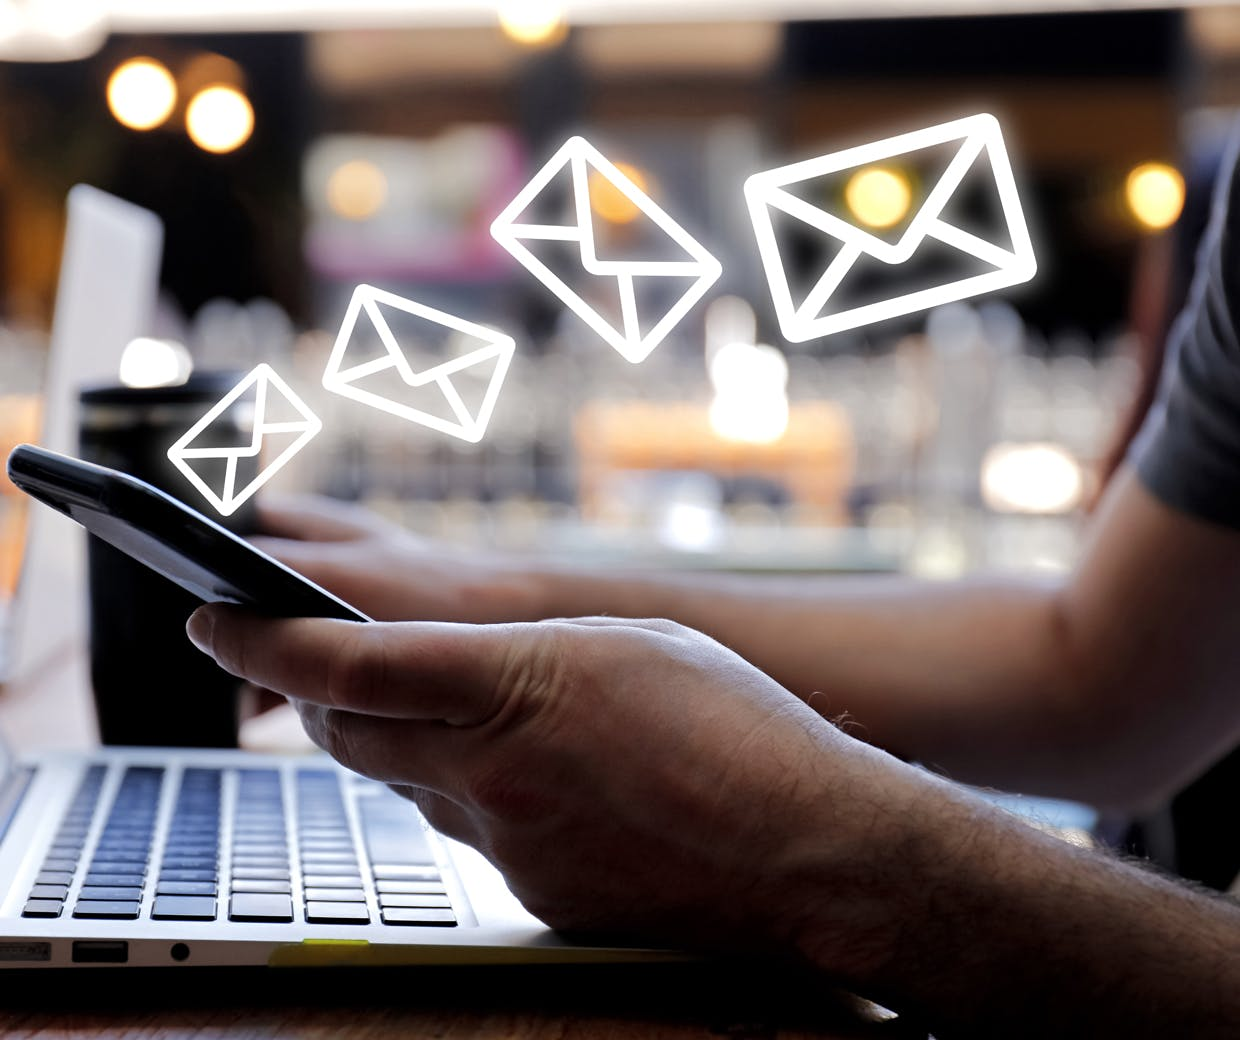 How progressive email policies can help improve mental health at work